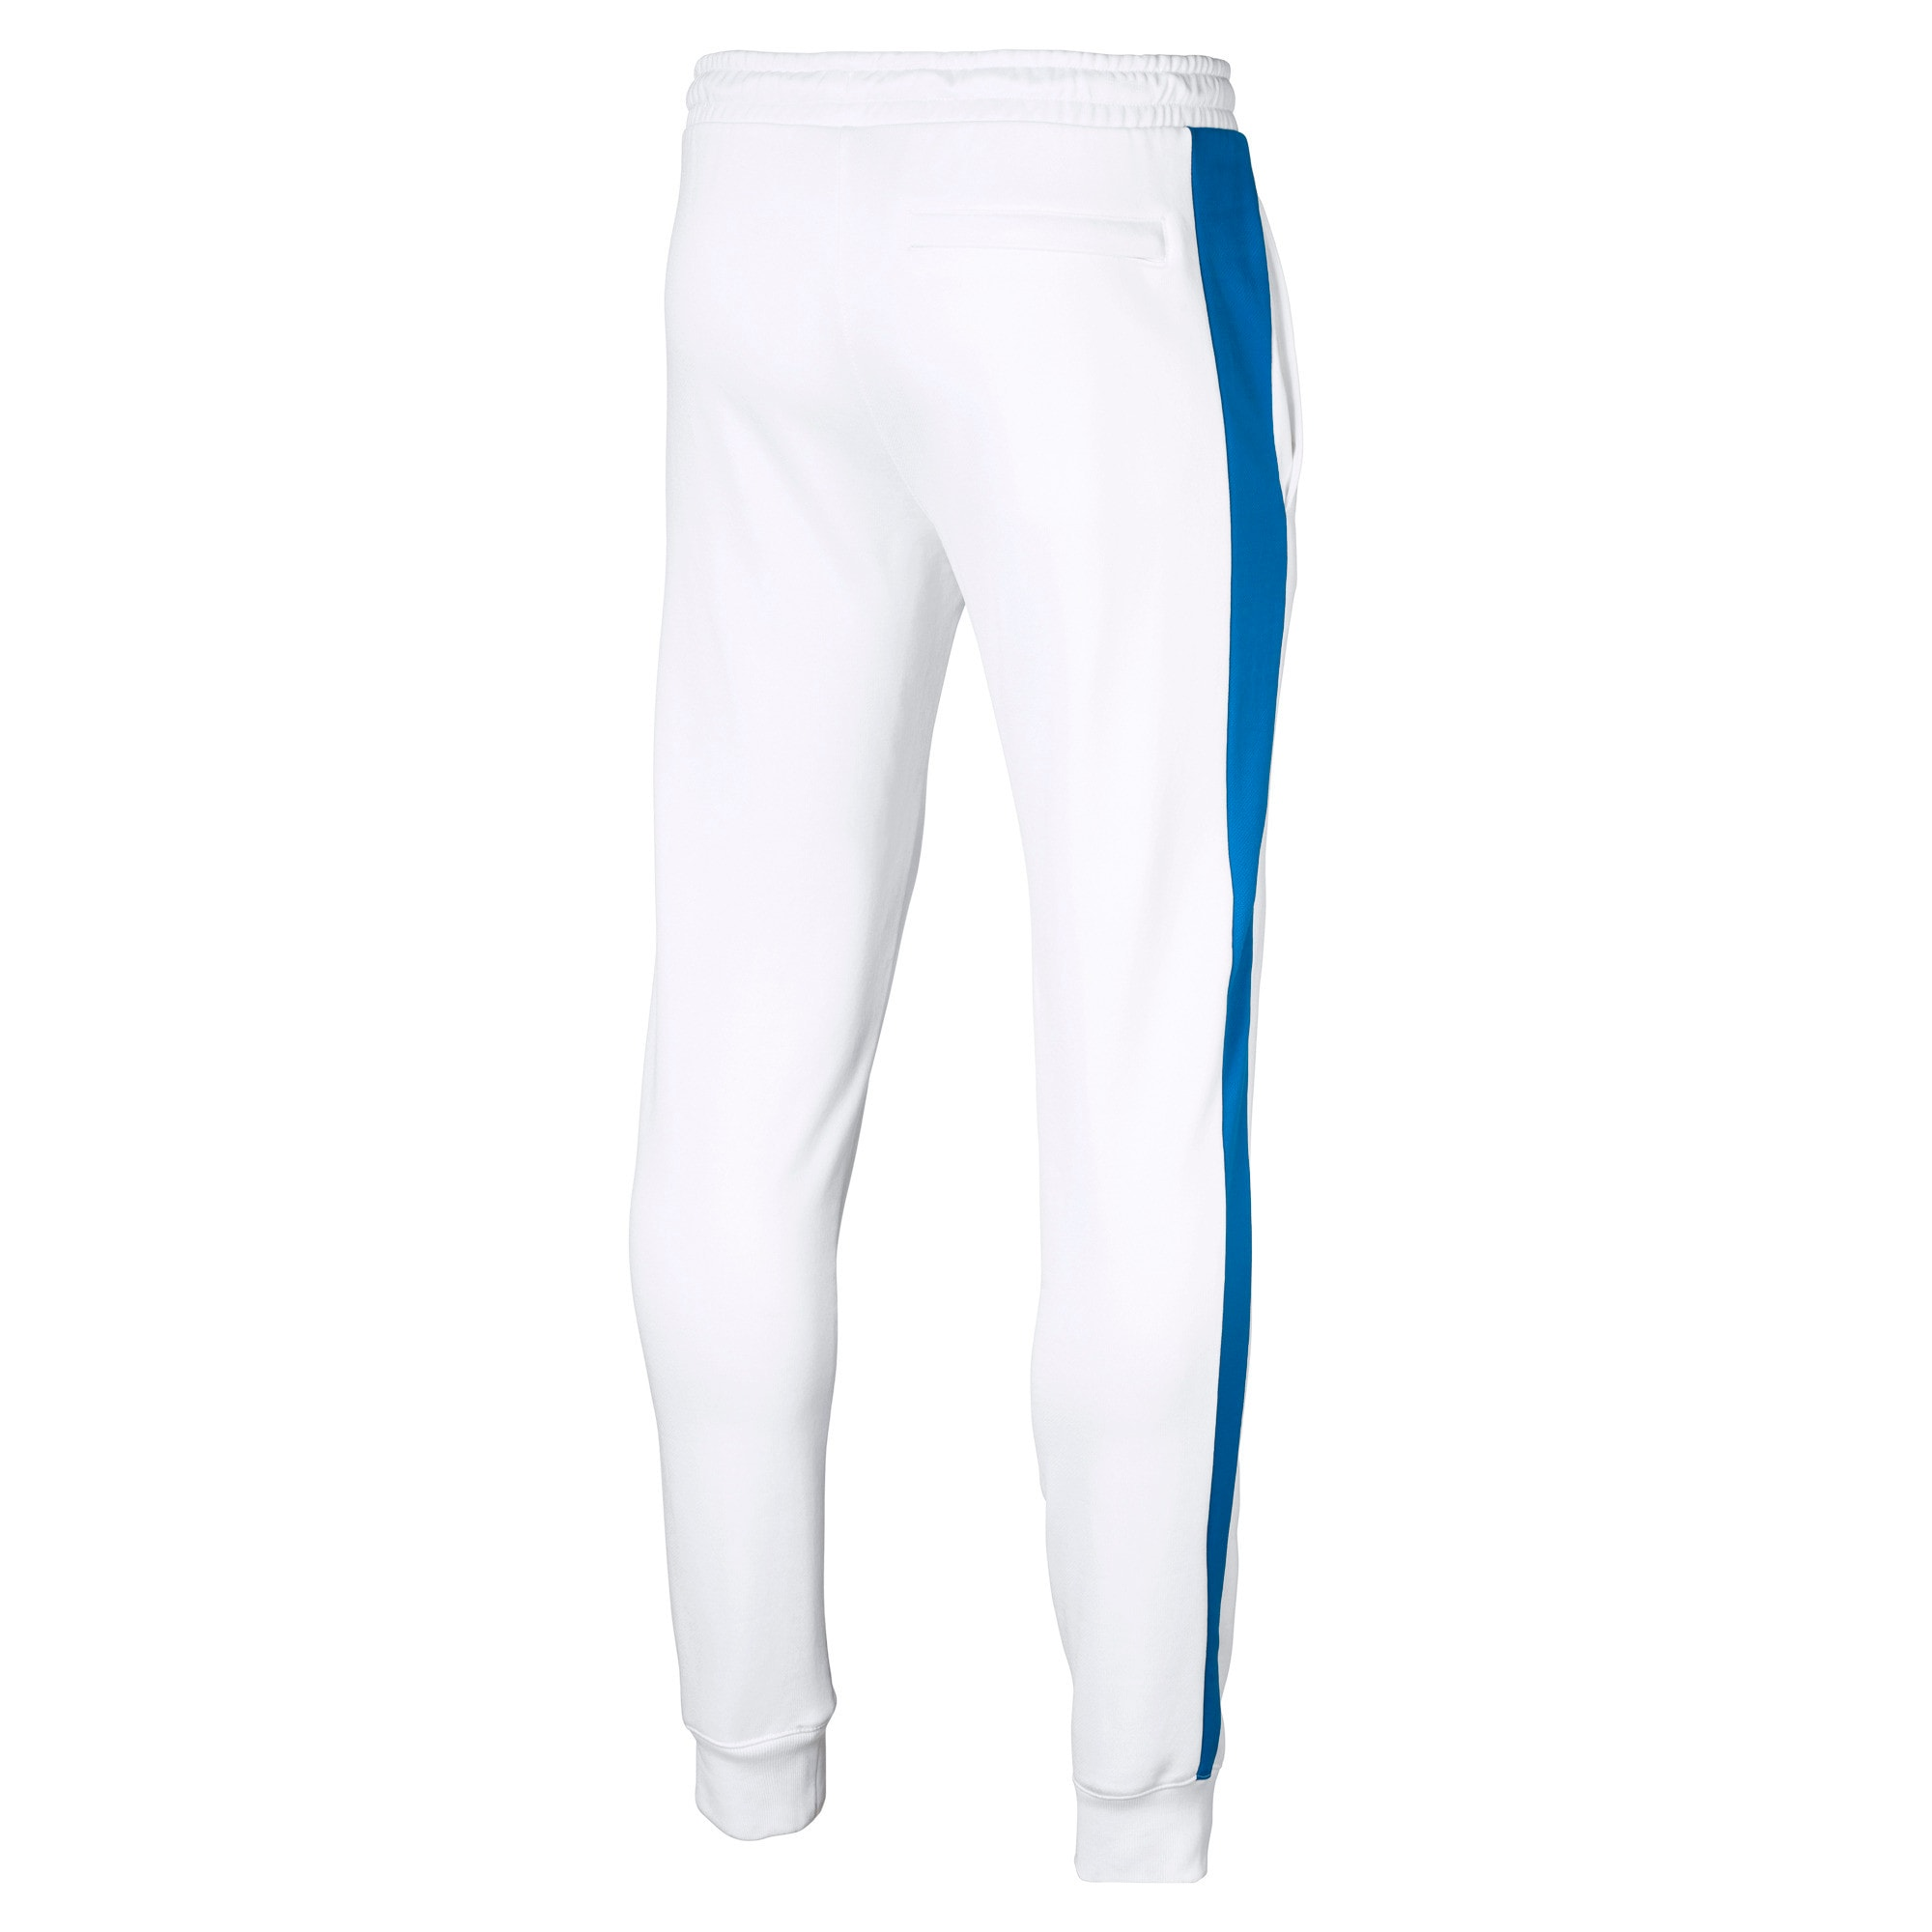 Thumbnail 4 of Iconic T7 Herren Gestrickte Sweatpants, Puma White, medium